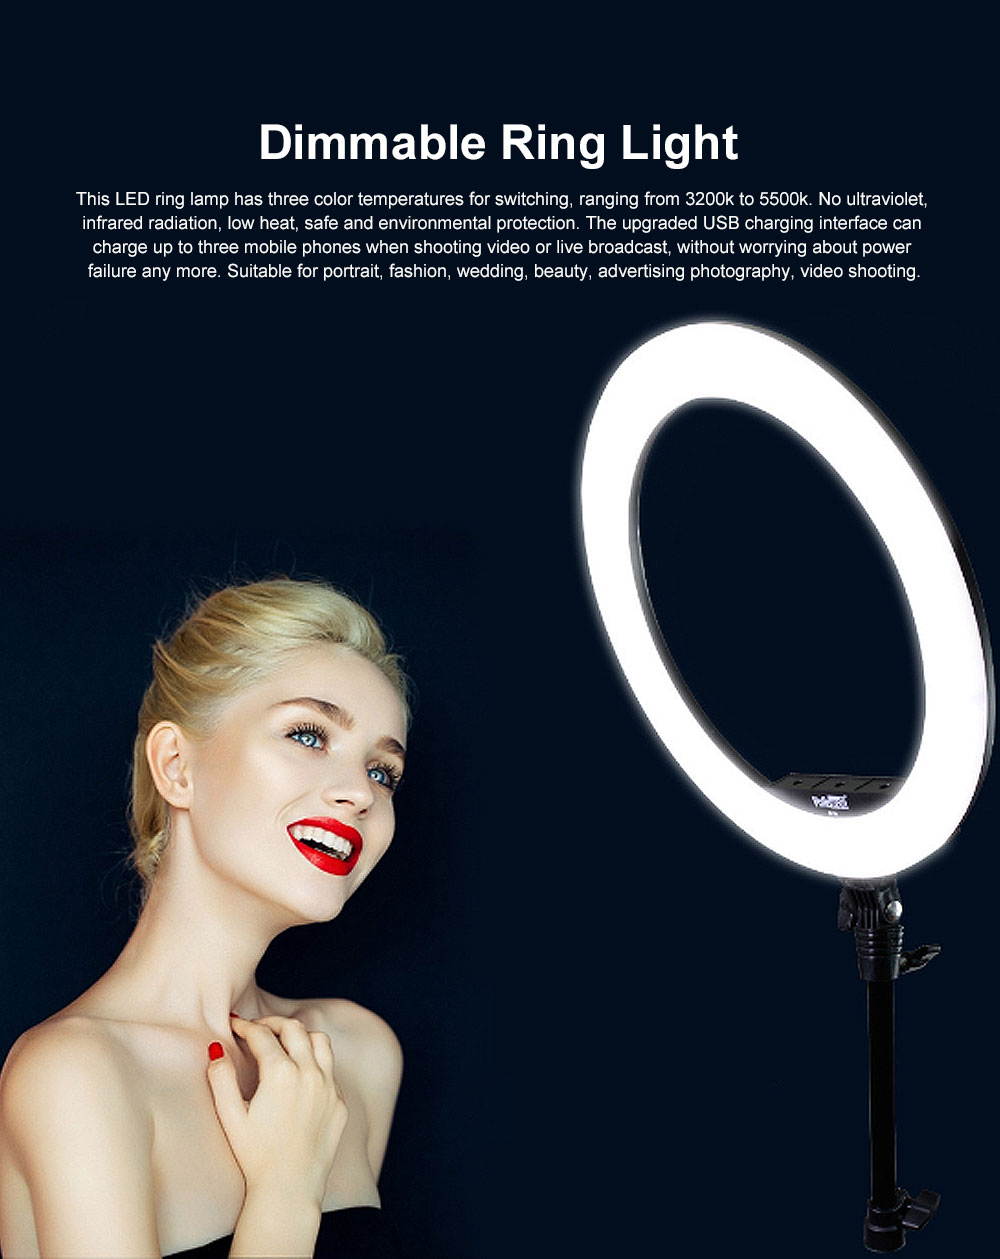 Selfie Desktop Ring Light, Dimmable Ring Light for YouTube Live Streaming, Portrait Photography, LED Round Fill Light 14 inches 0